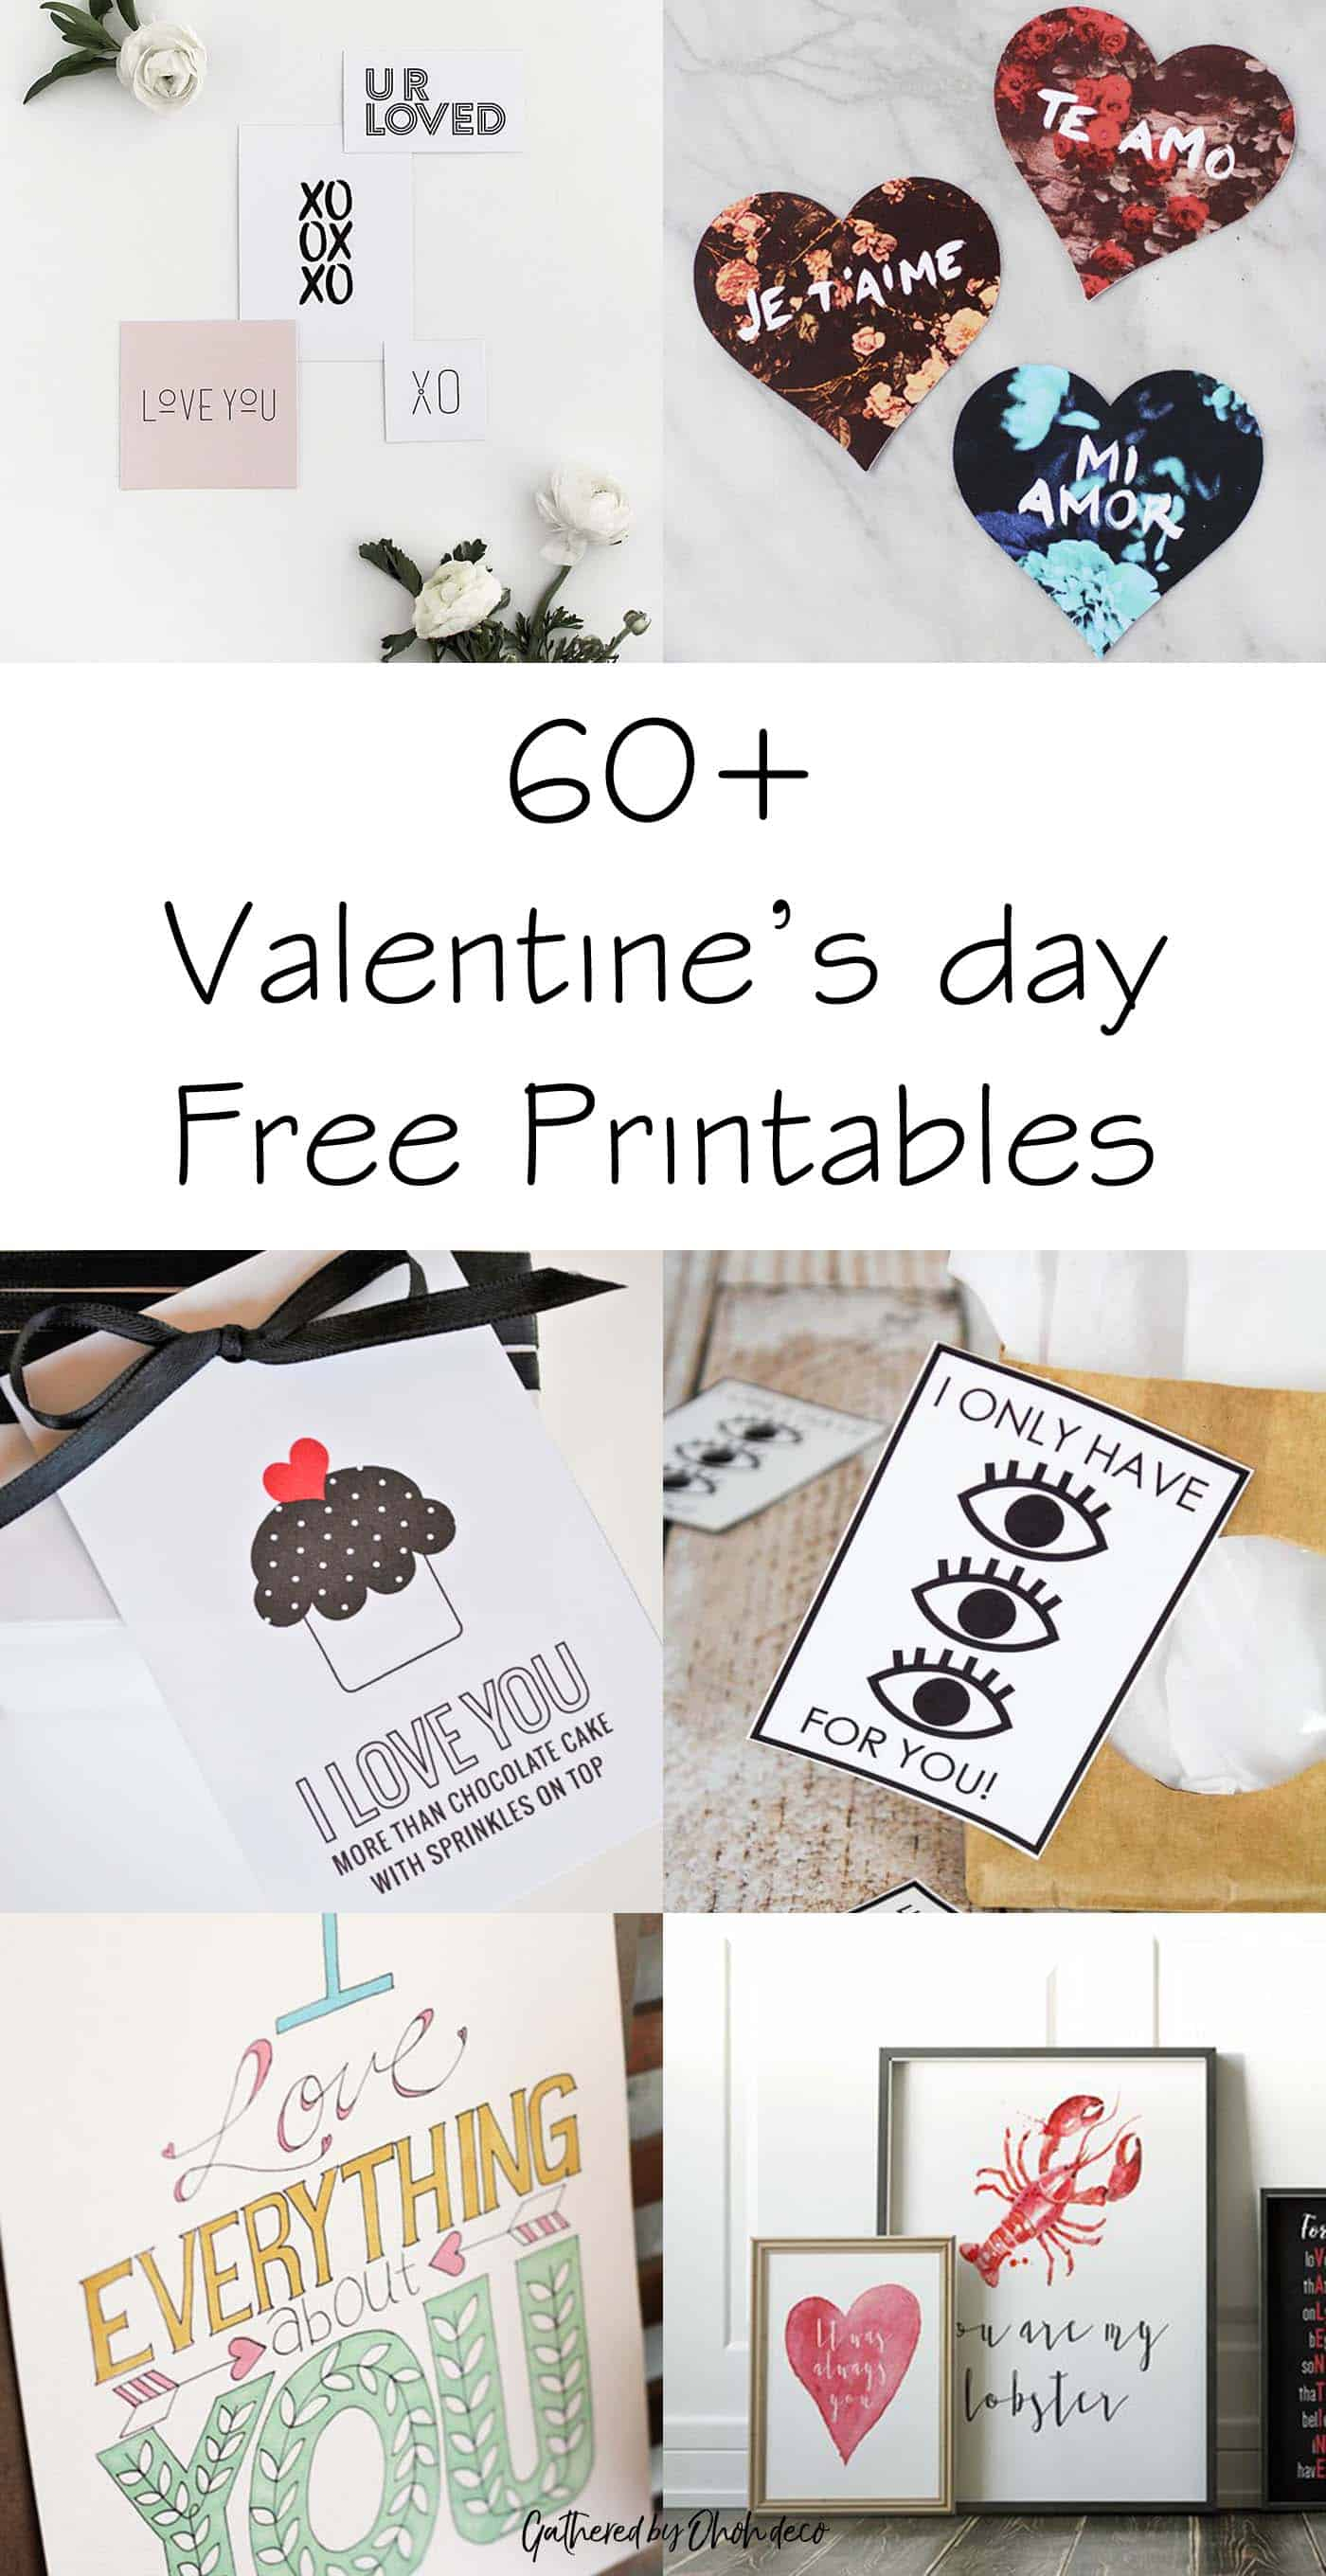 60 free prints for valentine's day